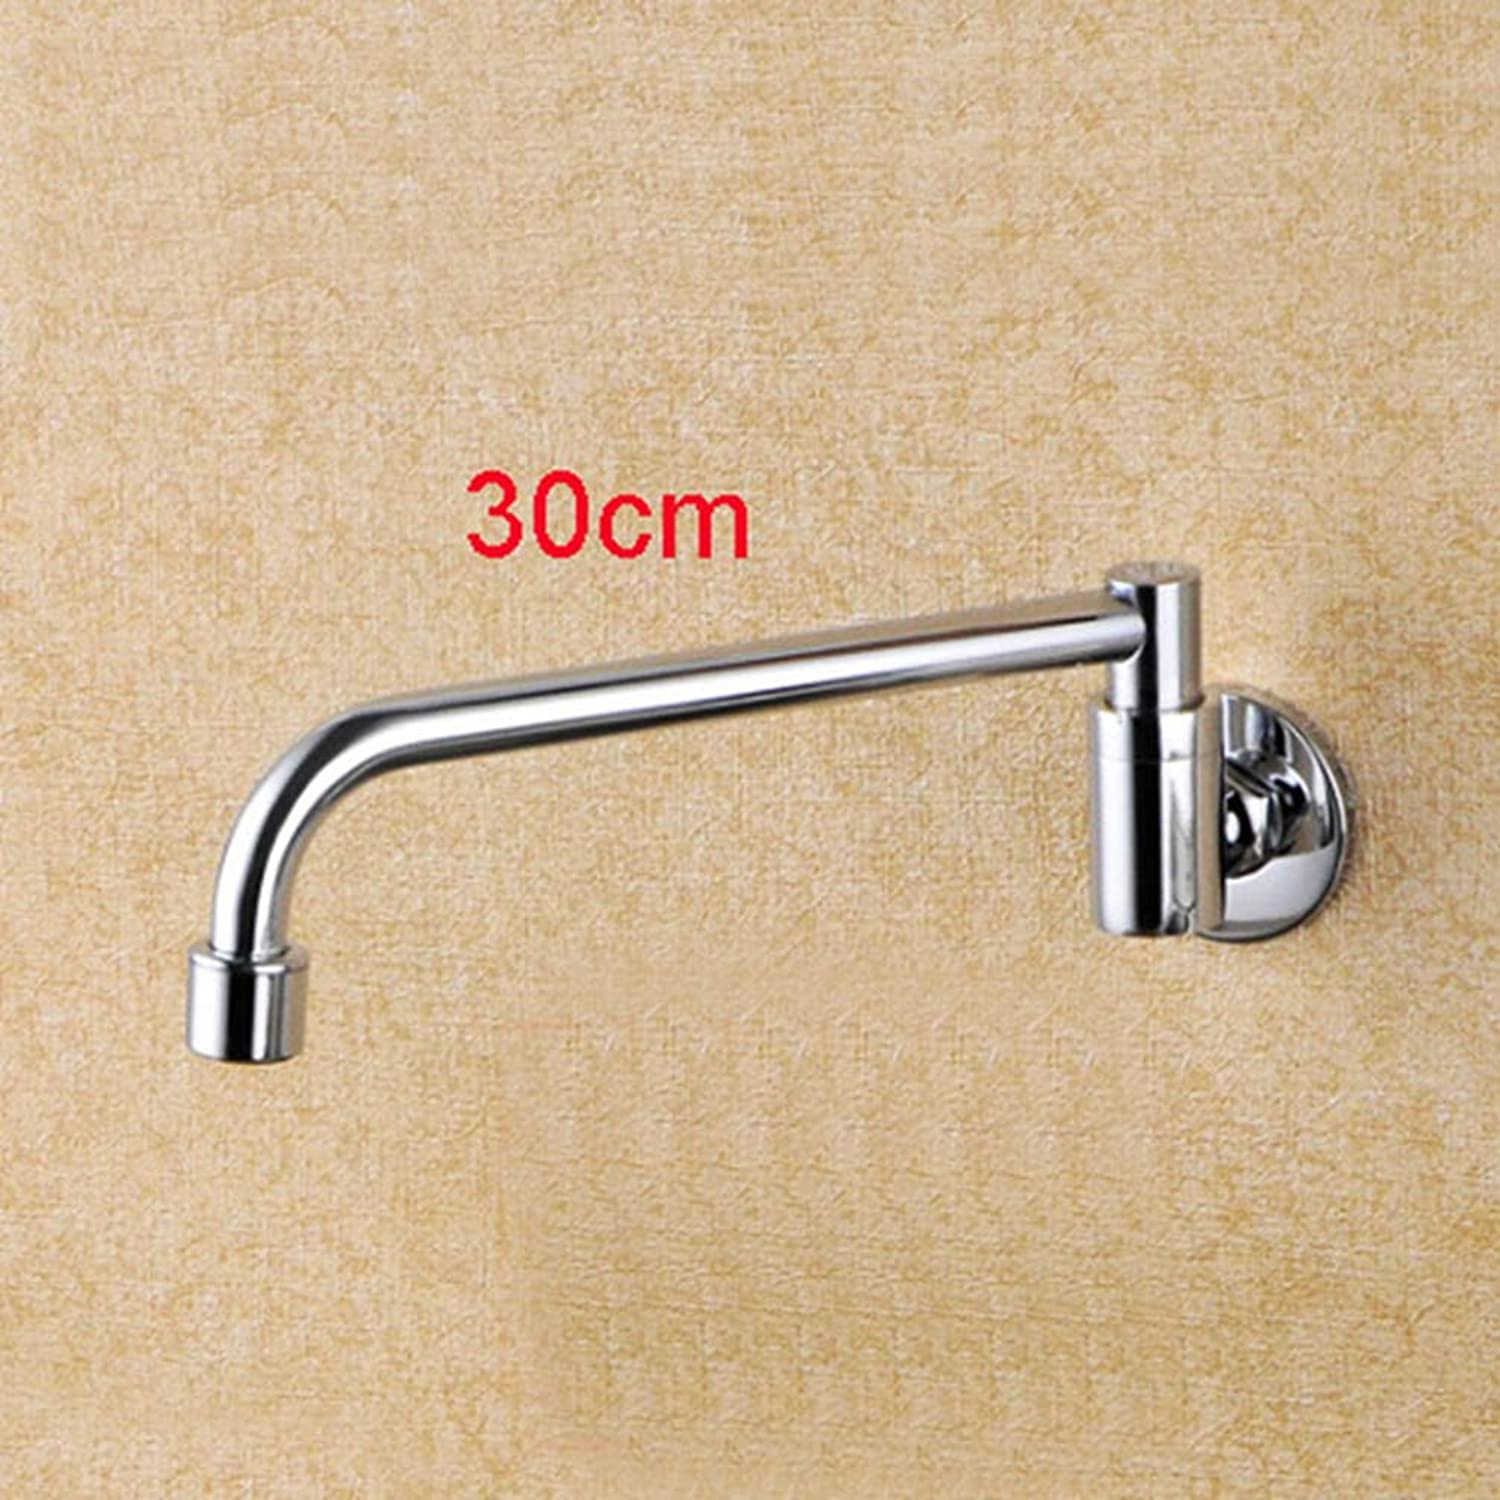 FZHLR Luxury Brass Material Silver color 15-30Cm Spout of Wall Mounted redate Switch Cold Water Kitchen Sink Faucet,30Cm